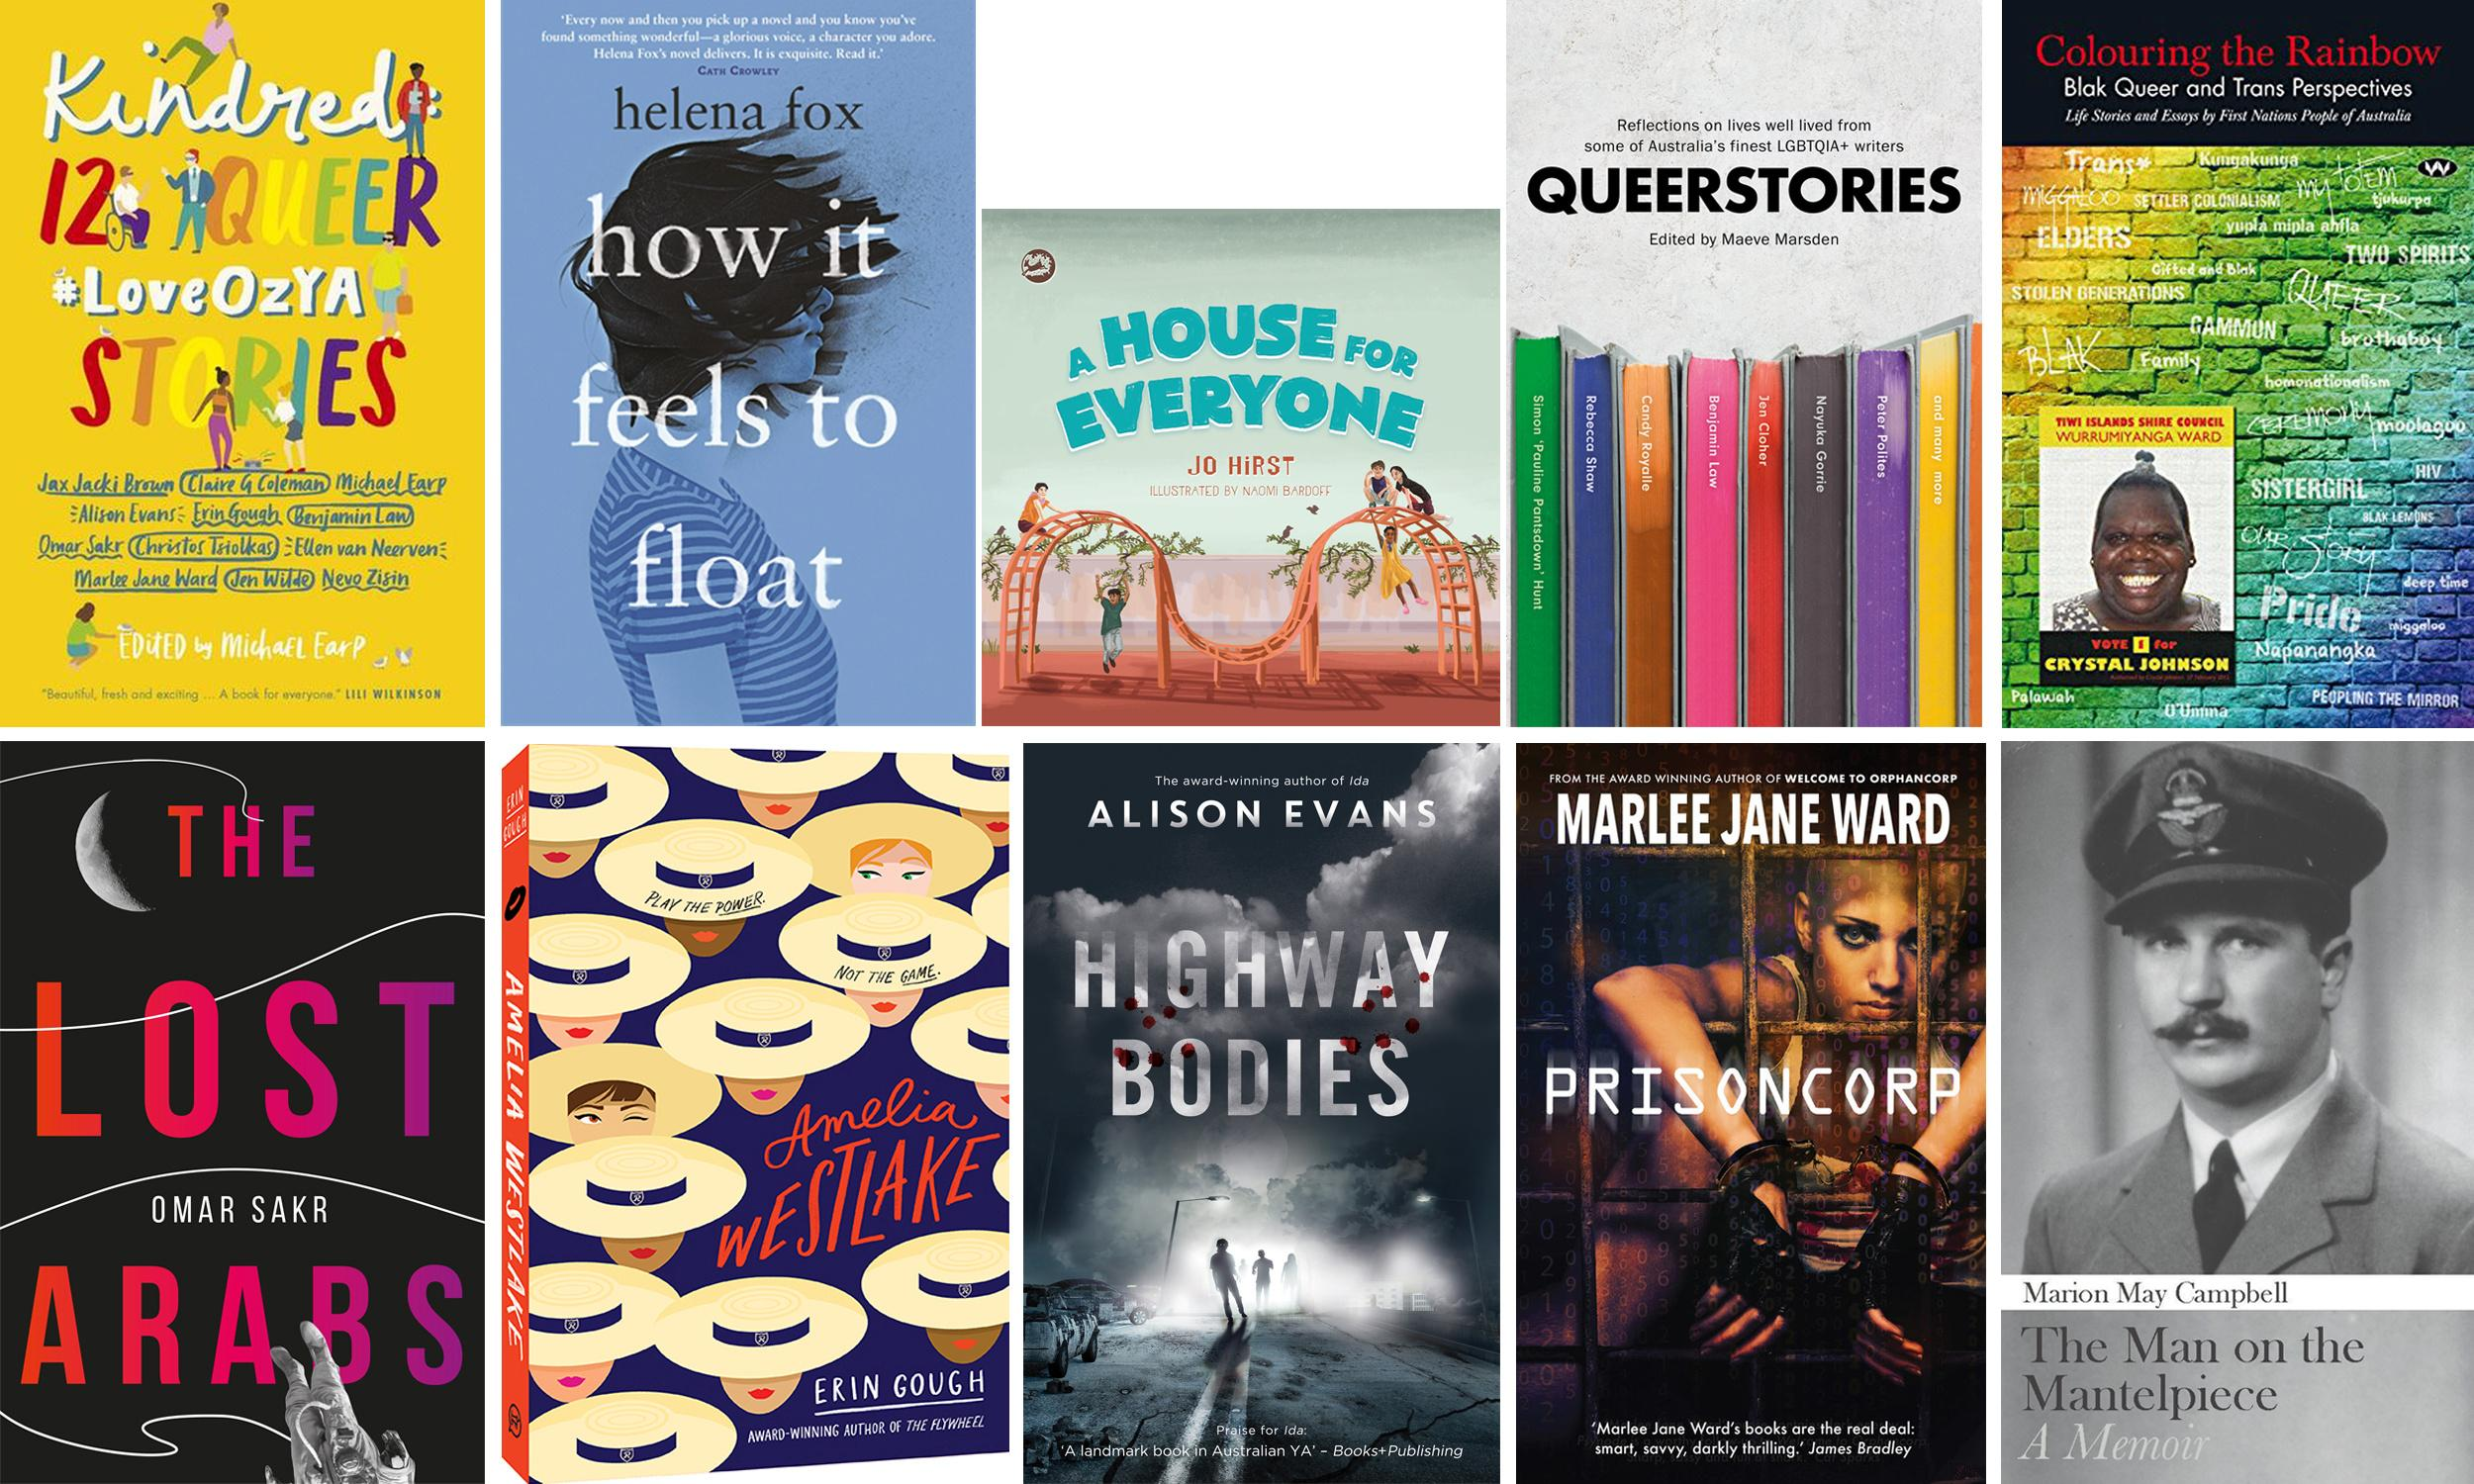 More than a coming-out story: 10 books to read during Pride month